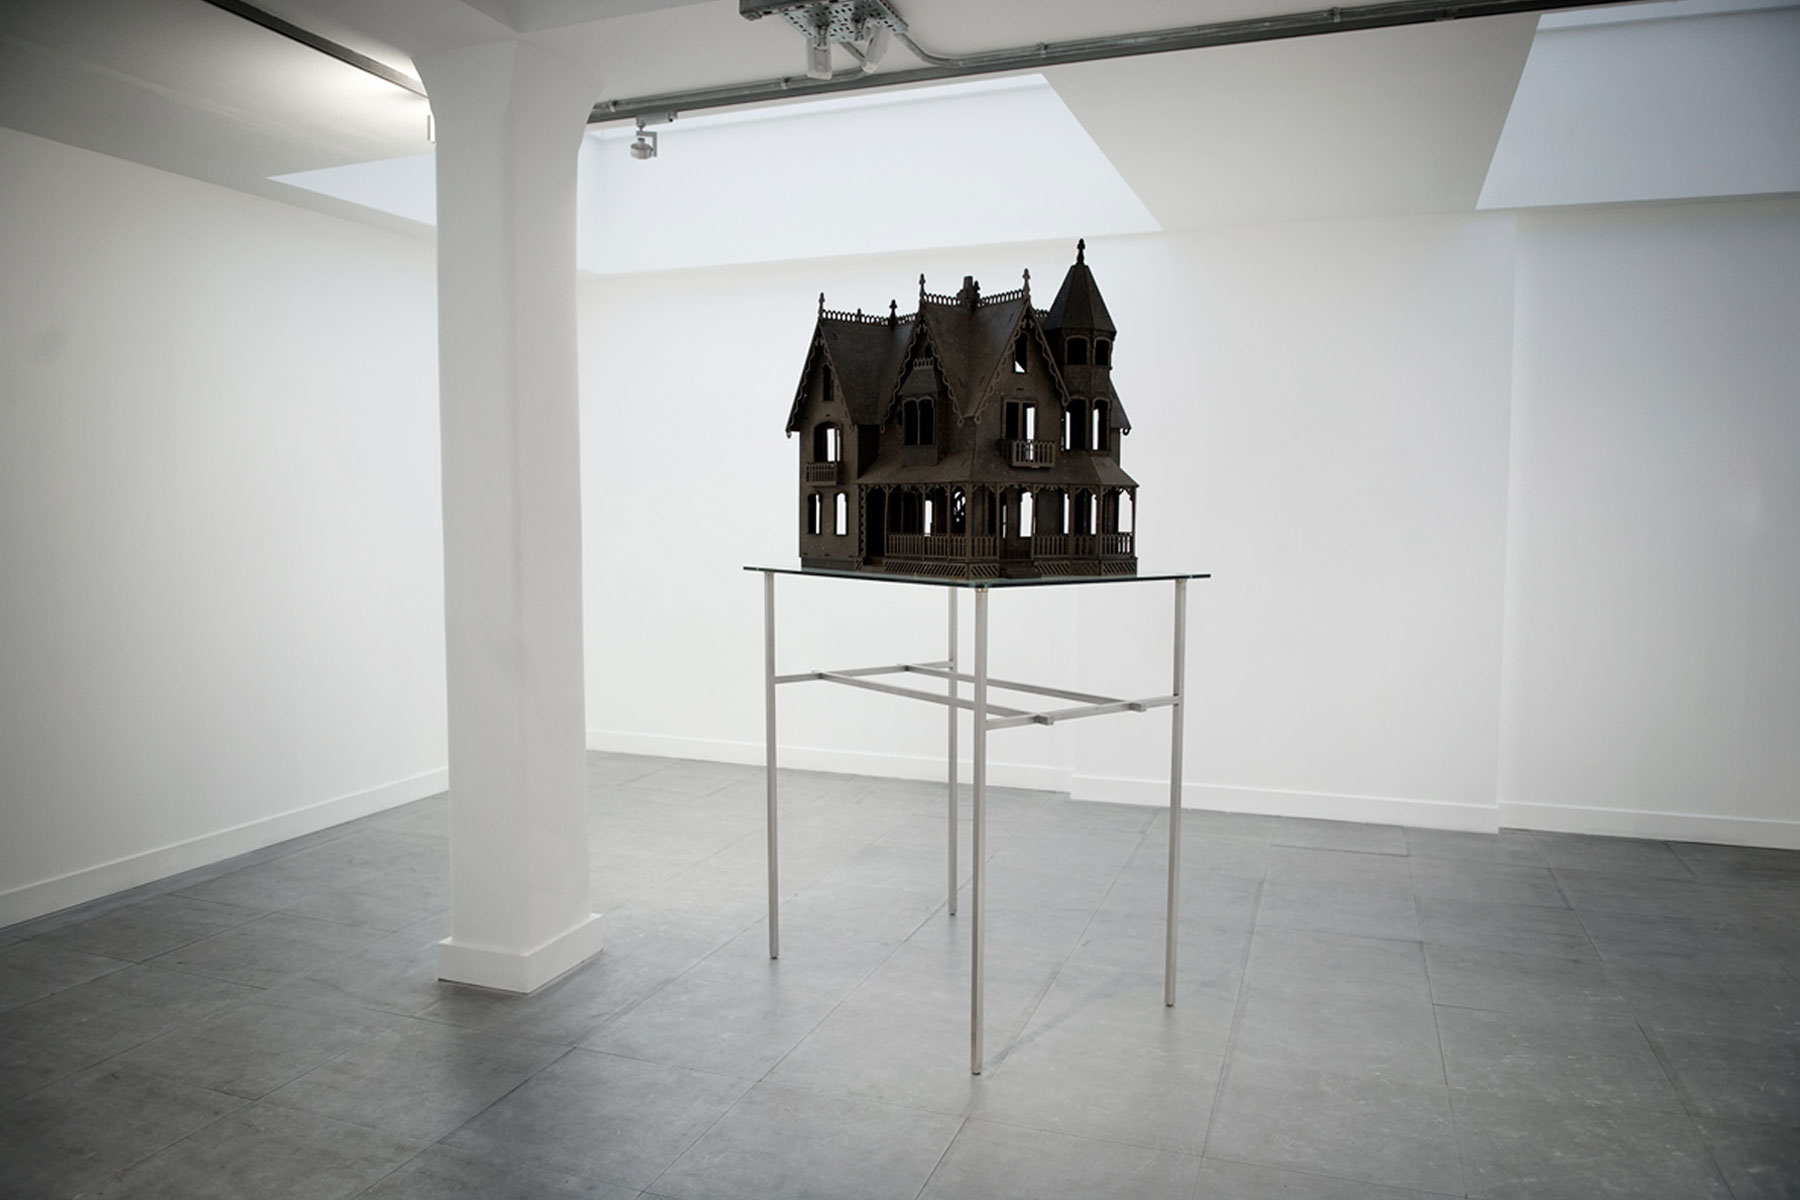 Alastair Mackie|House|2008|wasp nest|paper|dolls house|sculpture